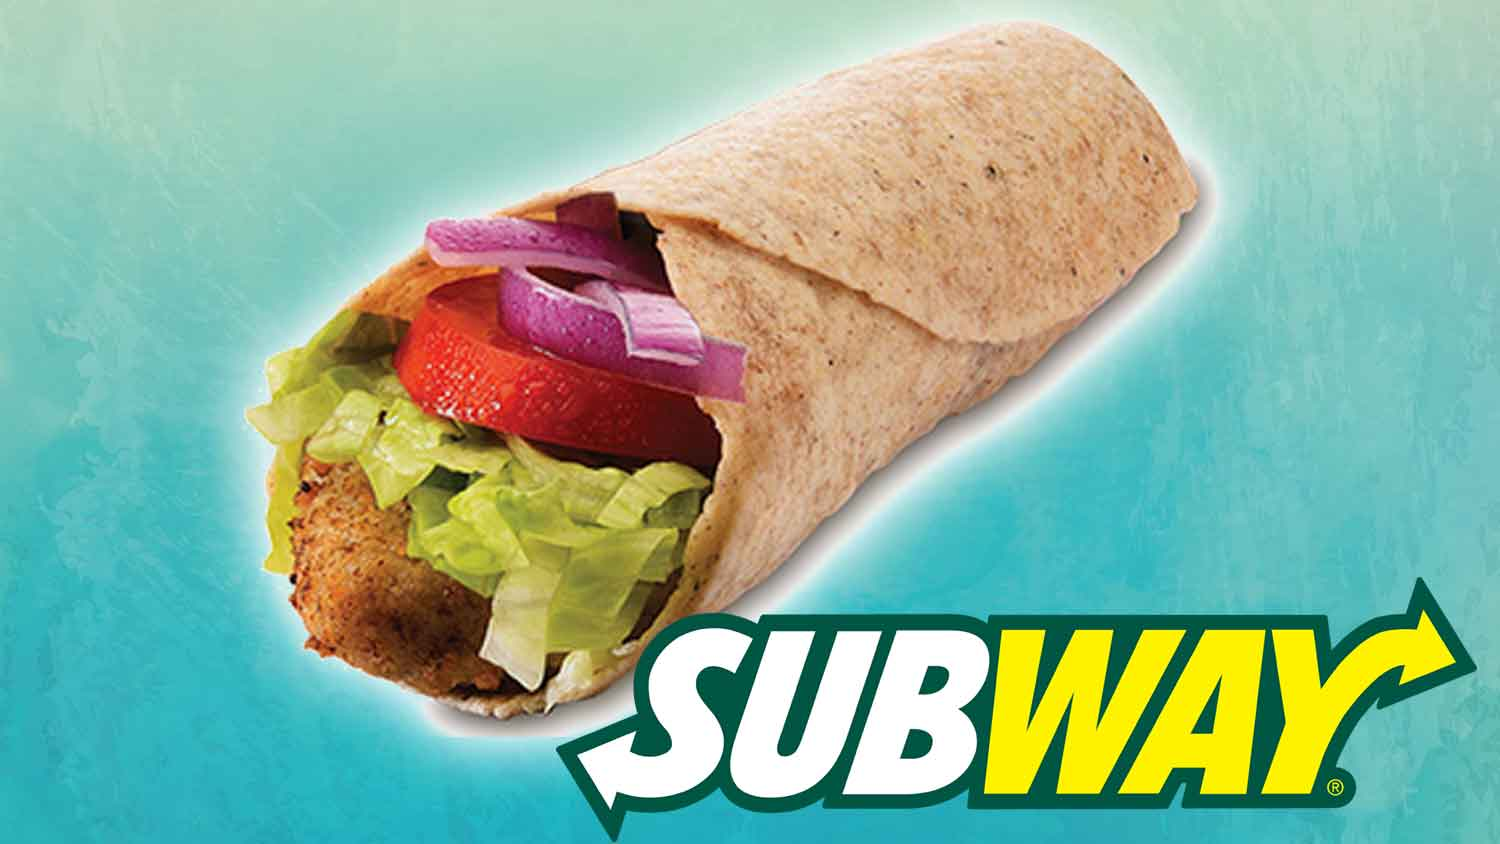 Meaty Vegan Garlic Wraps Now Available at Subway